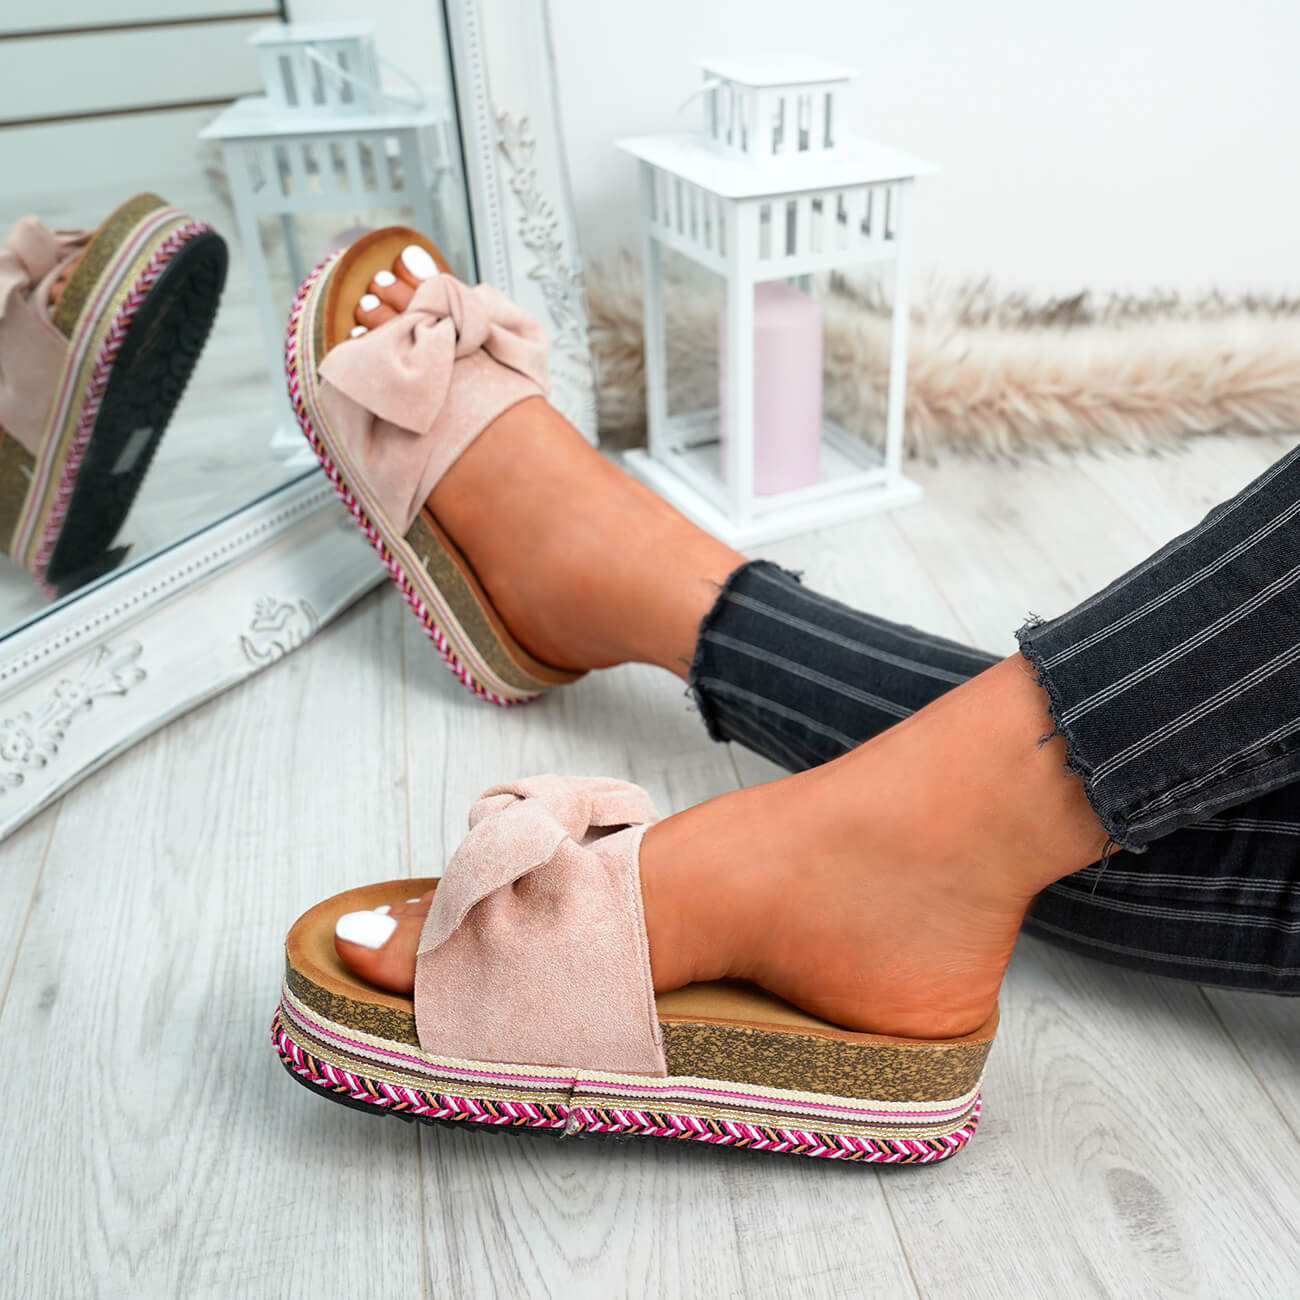 WOMENS-LADIES-BOW-SLIDERS-SLIP-ON-FLATFORMS-SUMMER-PARTY-SANDALS-SHOES-SIZE thumbnail 19